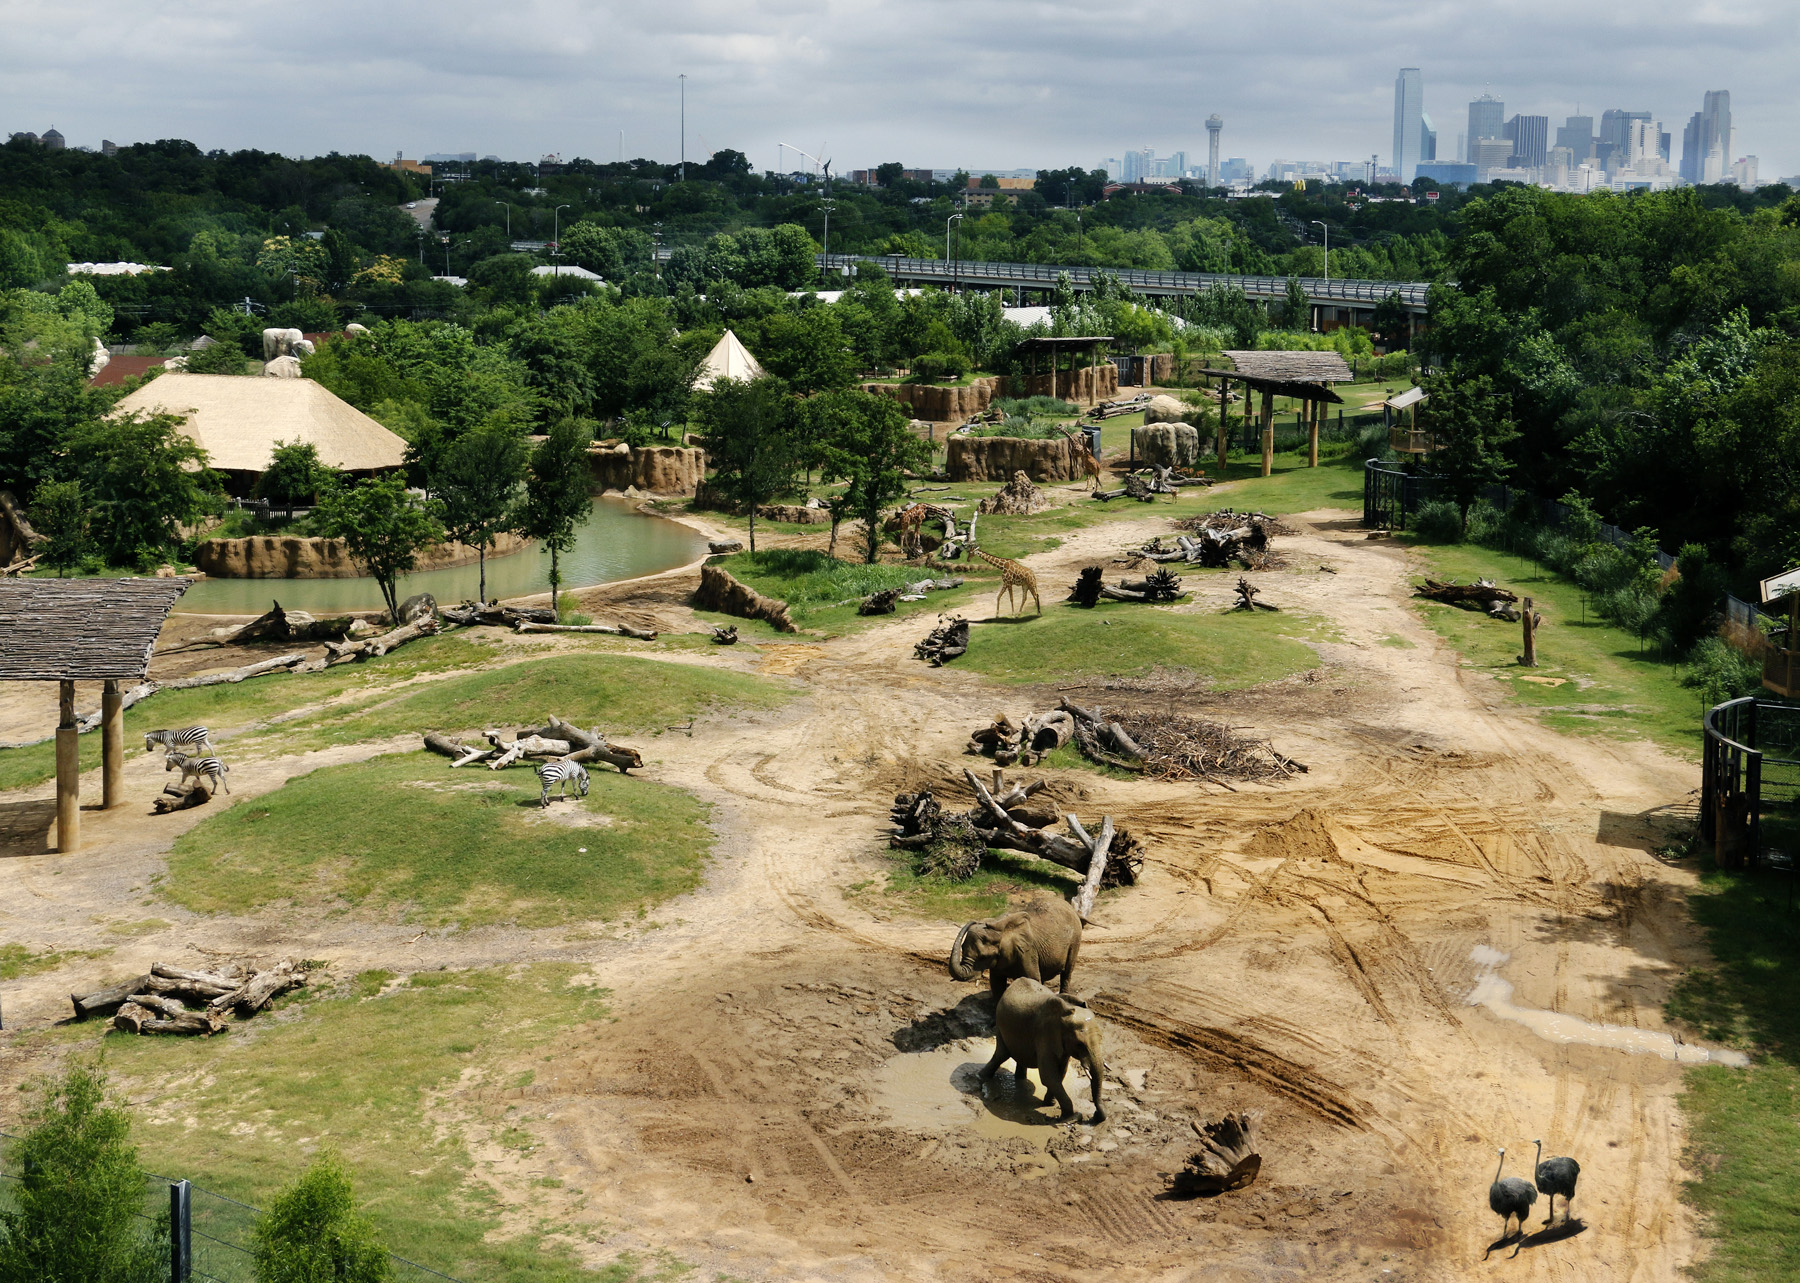 Dallas Zoo hopes to relocate elephants make room for rhinos in